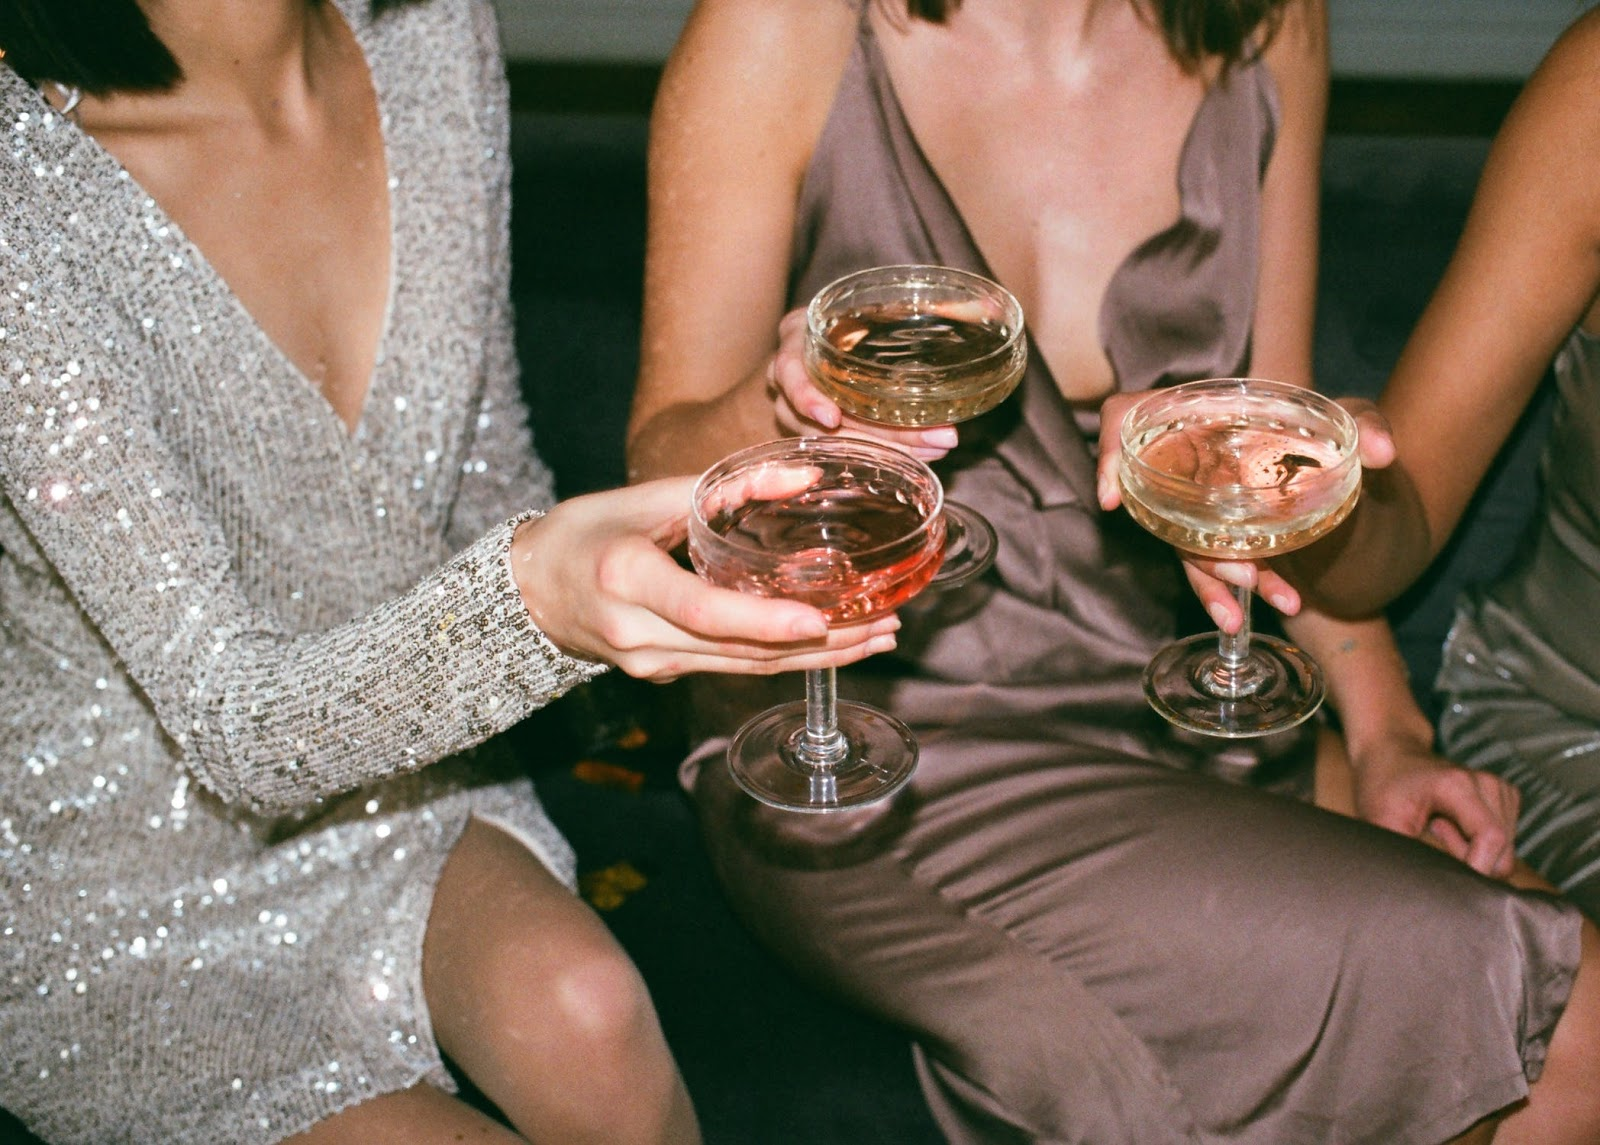 3 women giving wine toast in elegant gowns